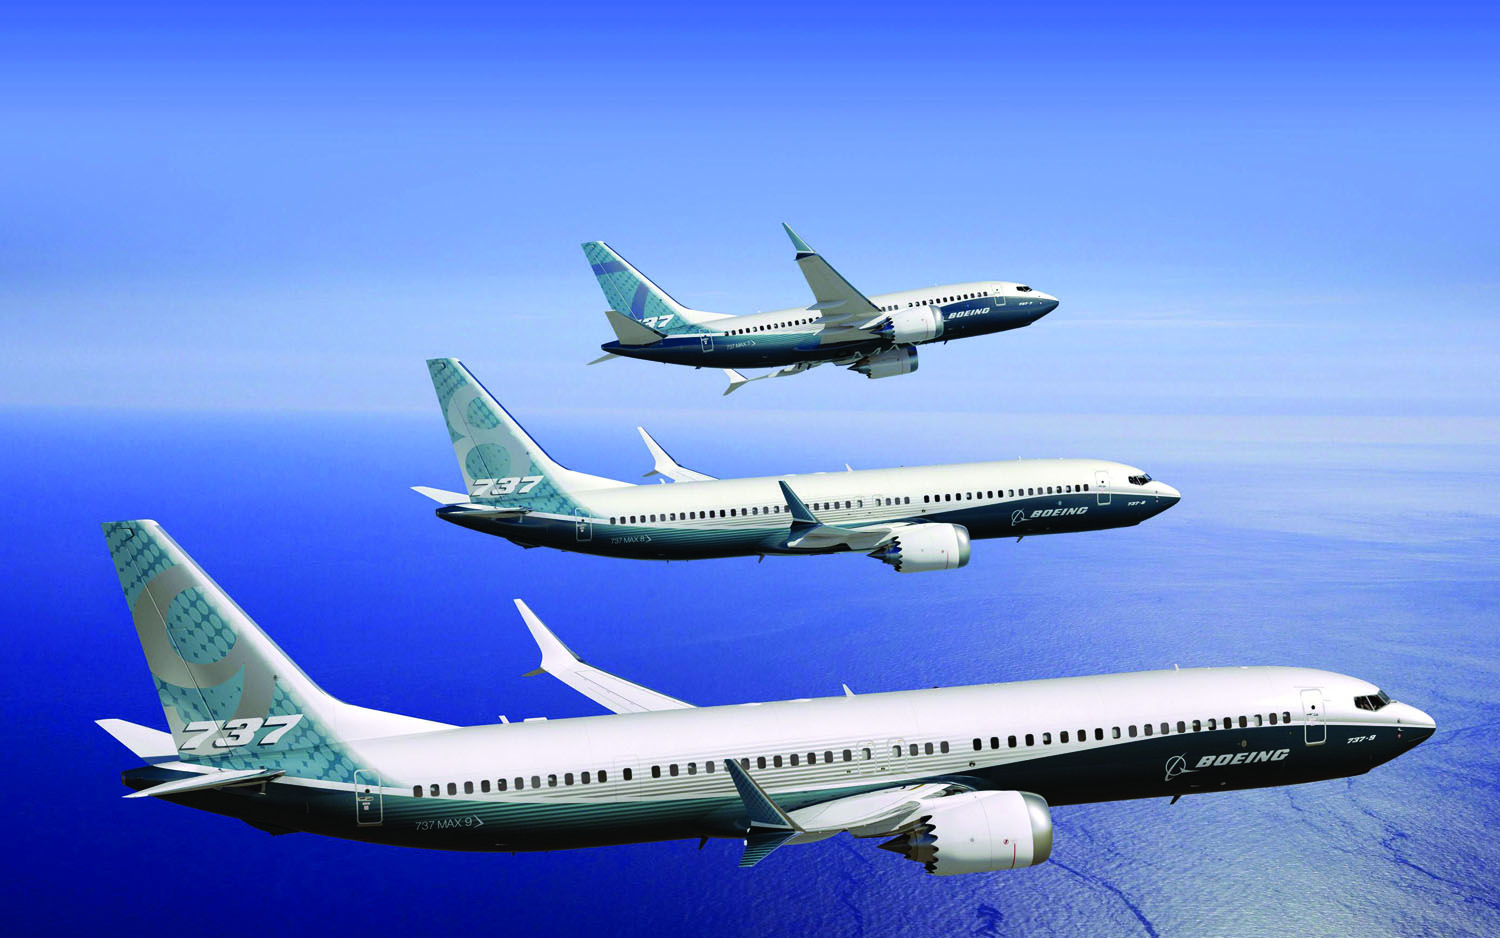 The 737 MAX family is shown in this artist's concept: 737 MAX 7 (top), 737 MAX 8 (center), 737 MAX 9 (bottom). (Photo courtesy of Boeing Media)